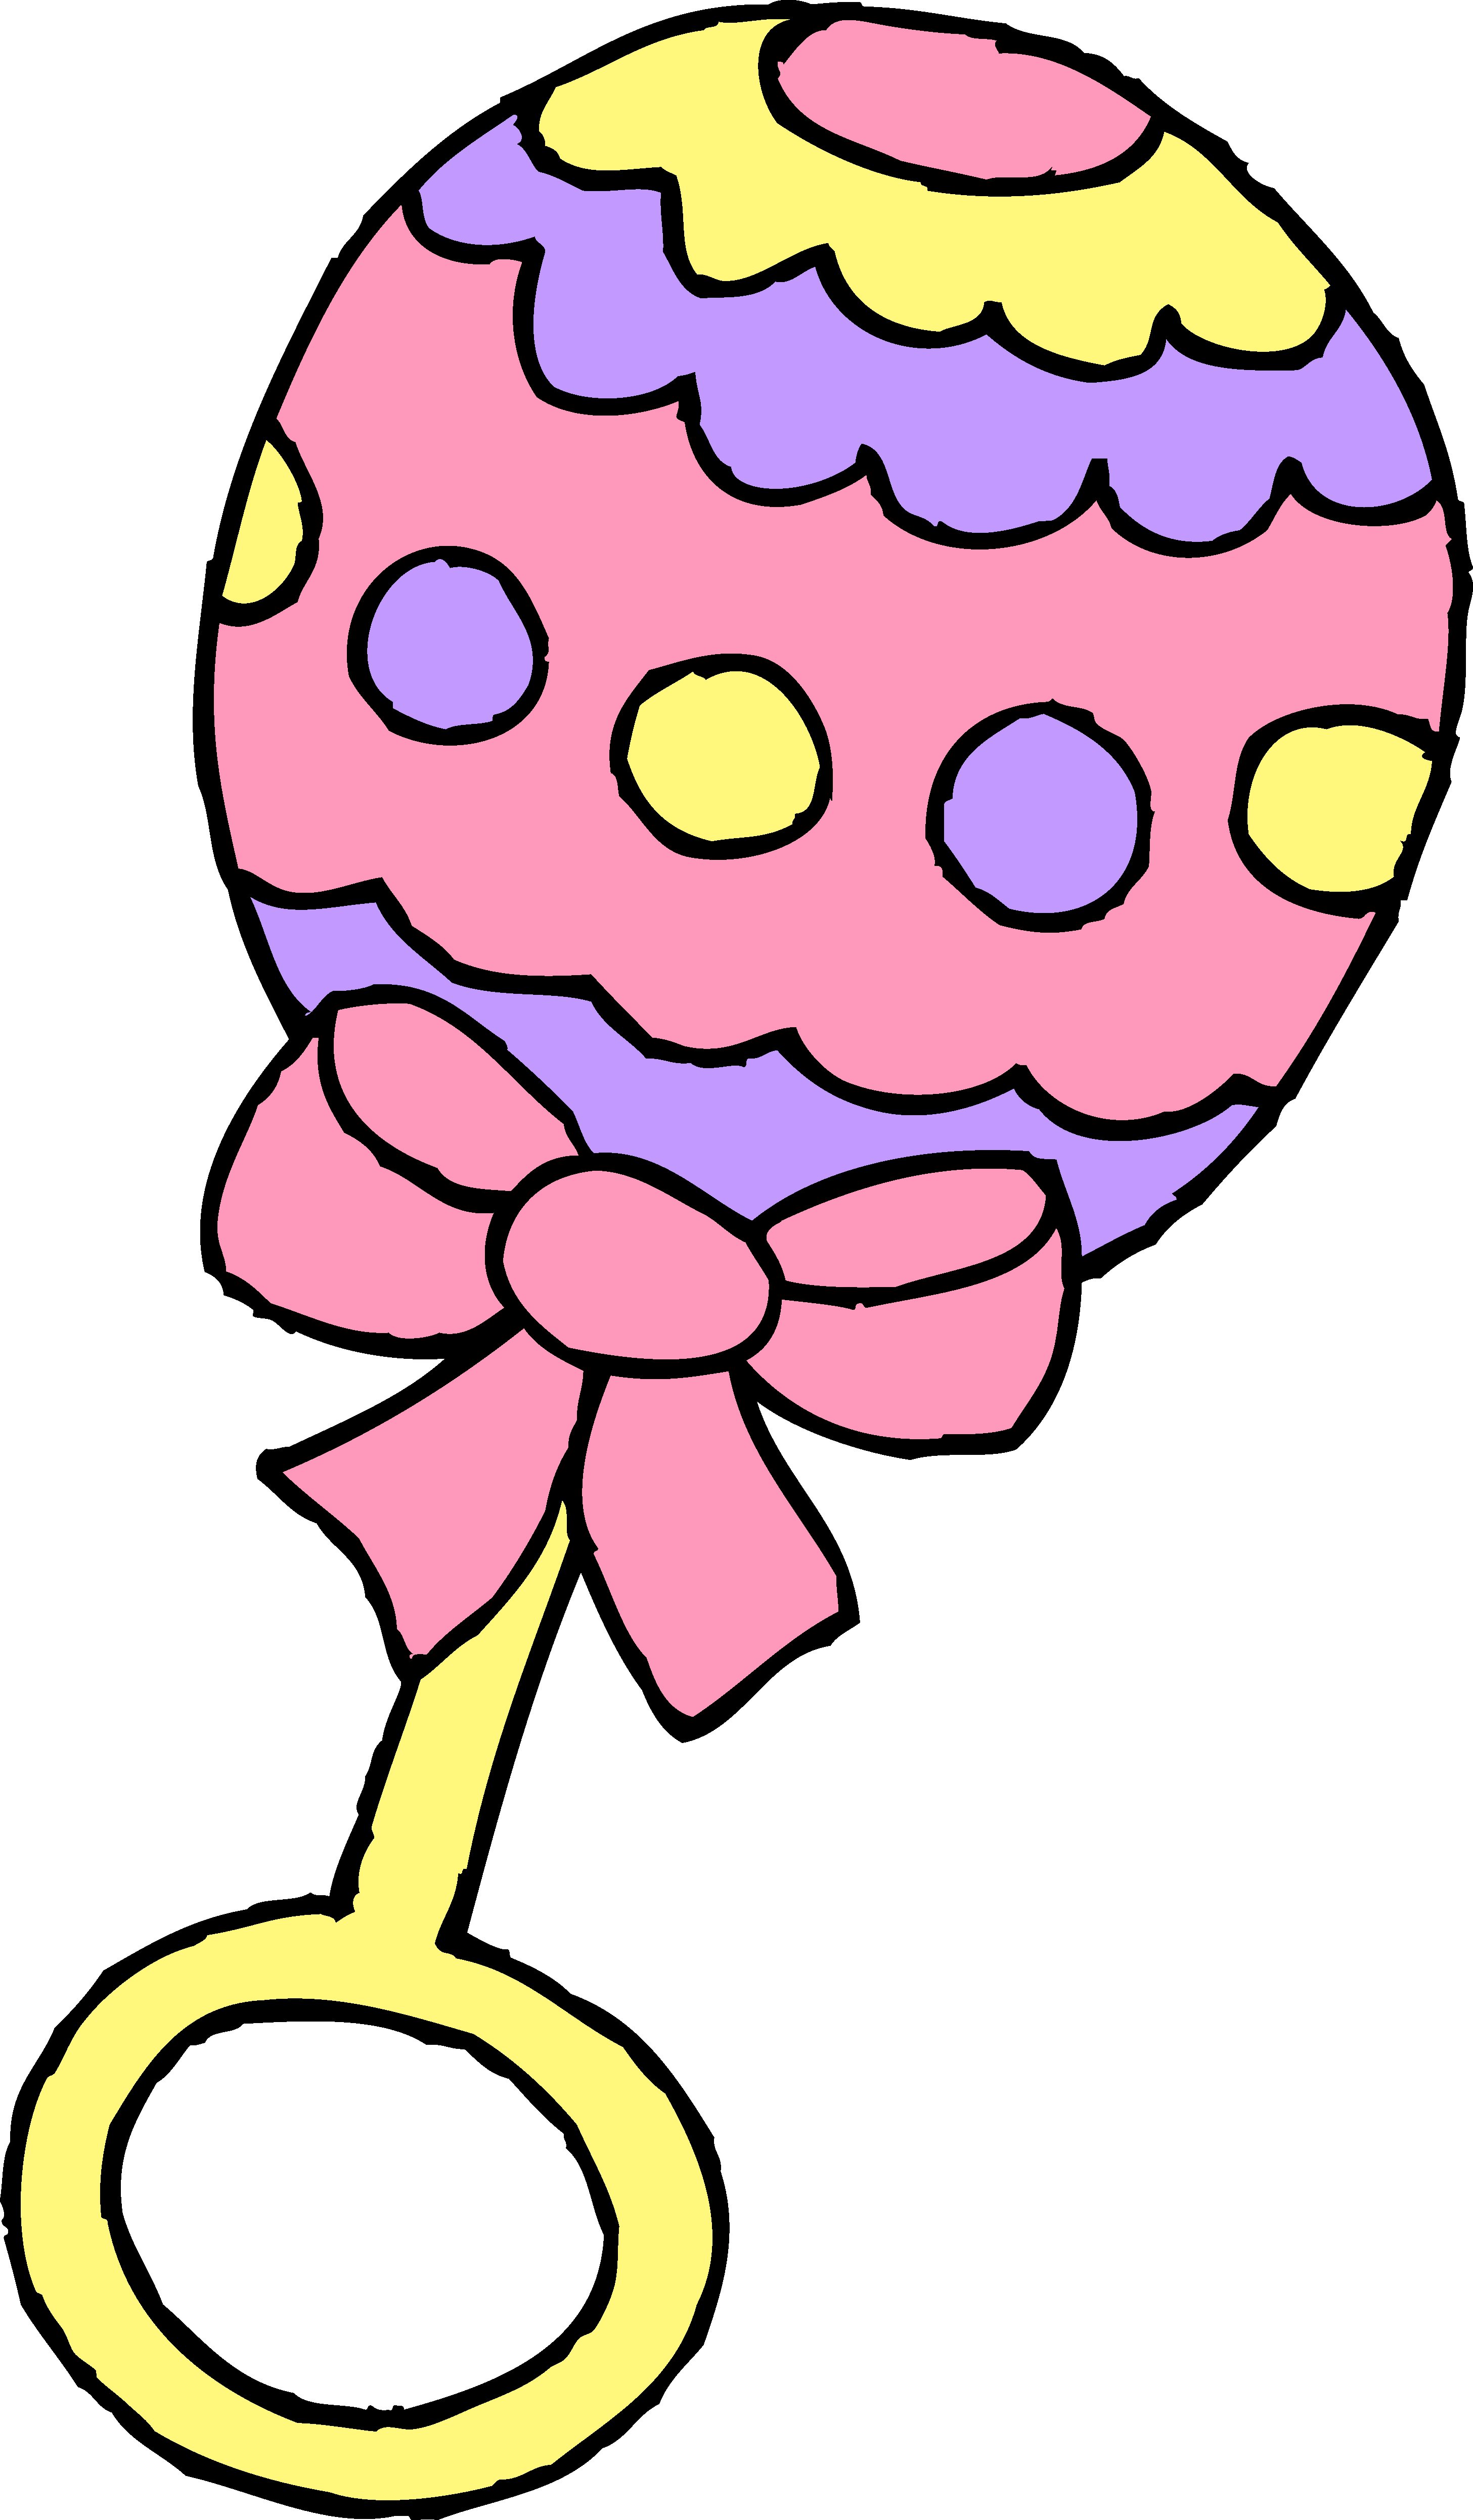 Baby Rattle Clipart - Cliparts.co